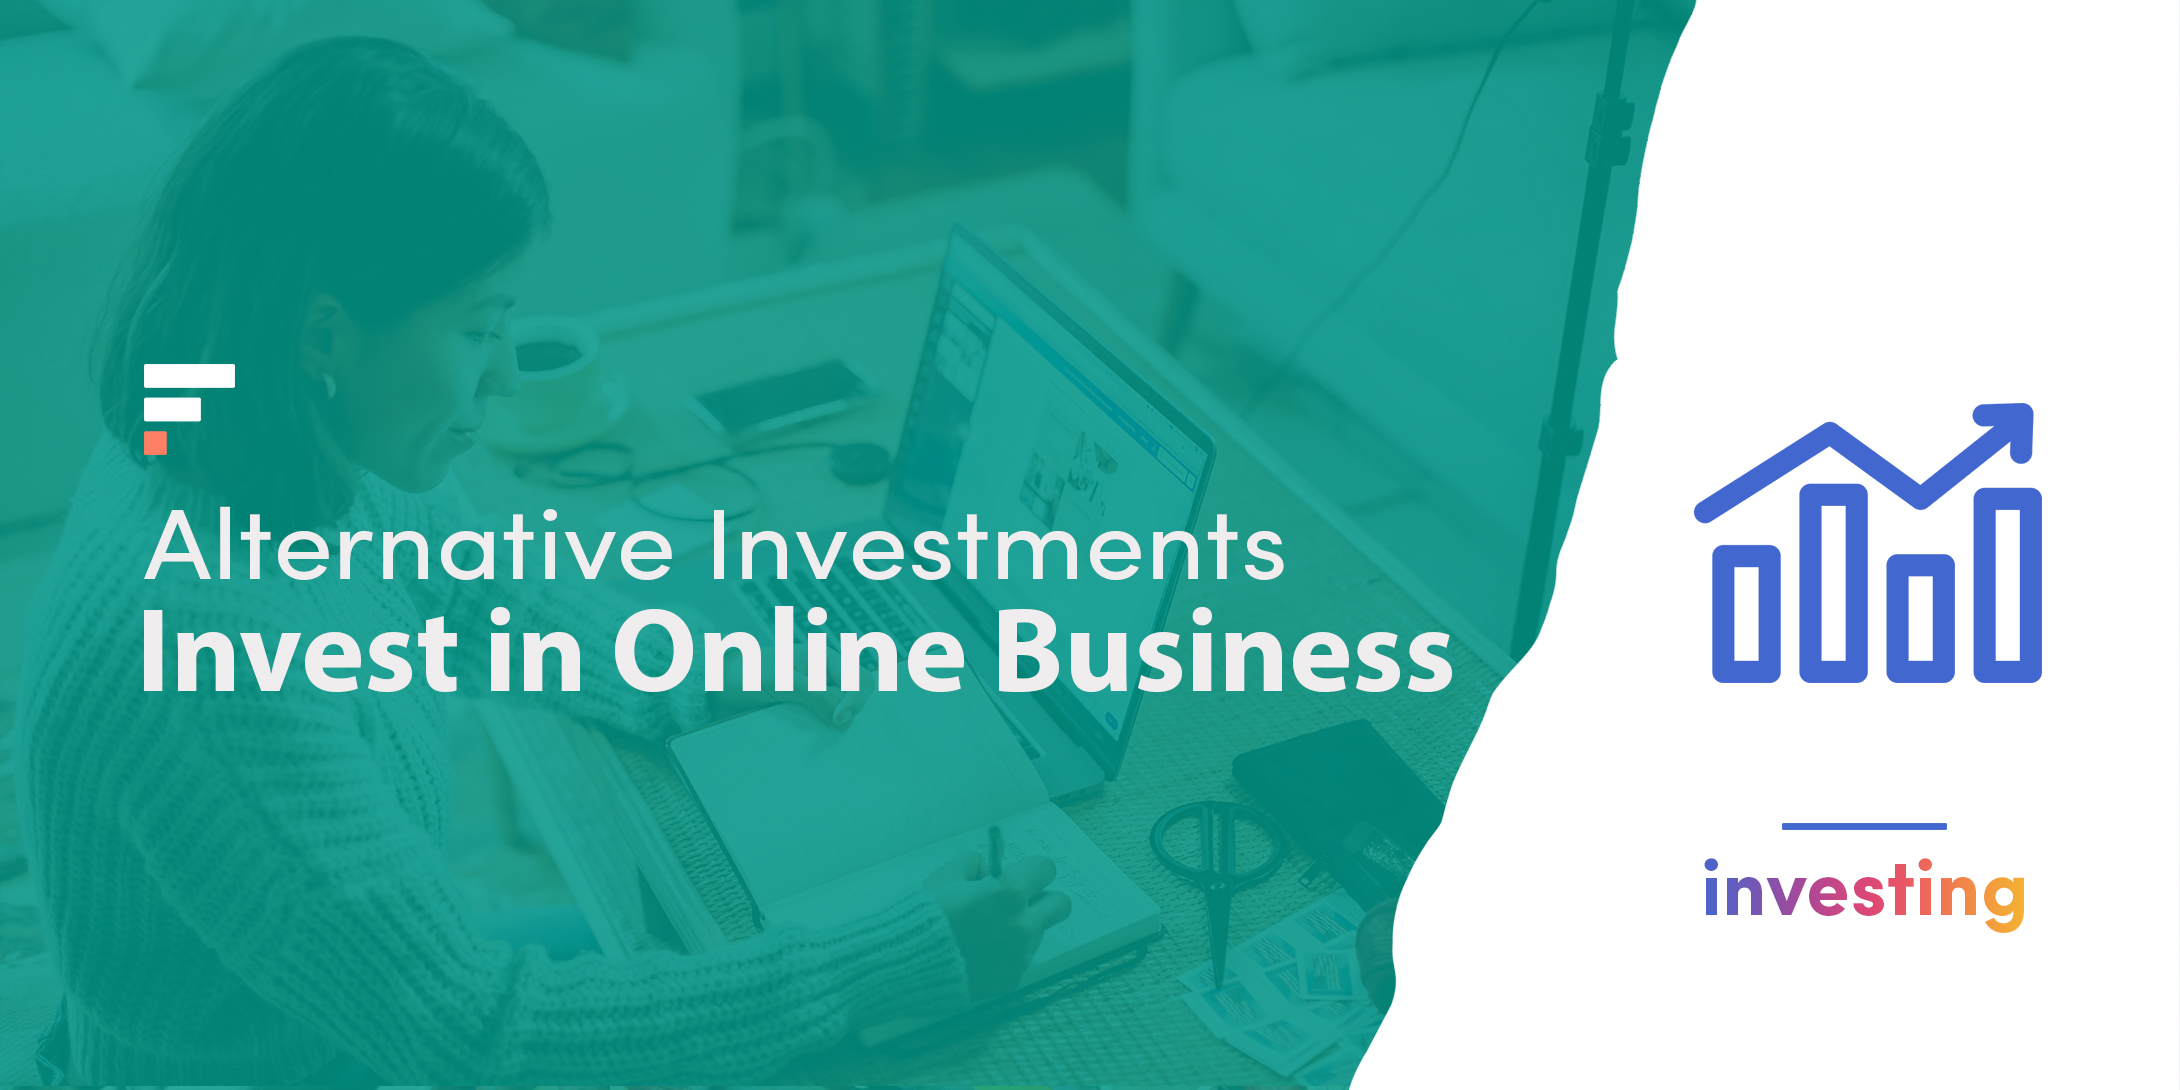 Alternative Investments: Invest in Online Business